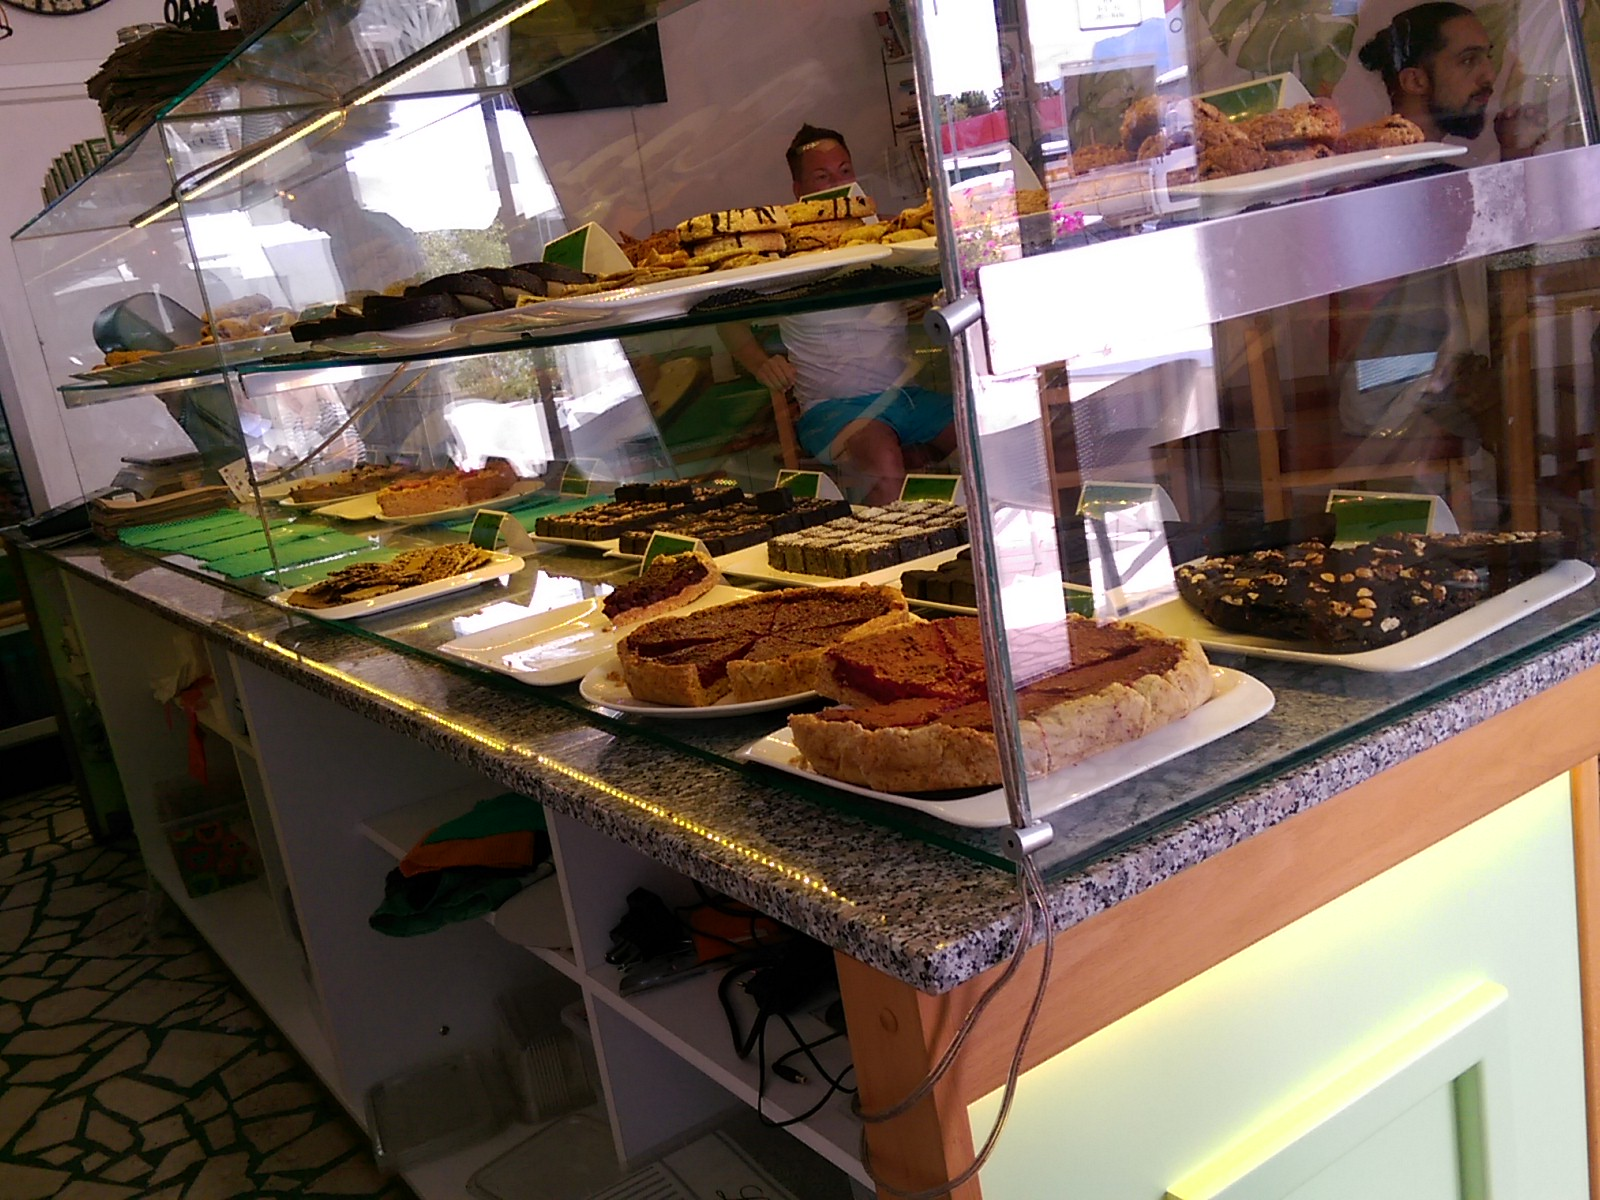 A glass counter full of cakes and pie